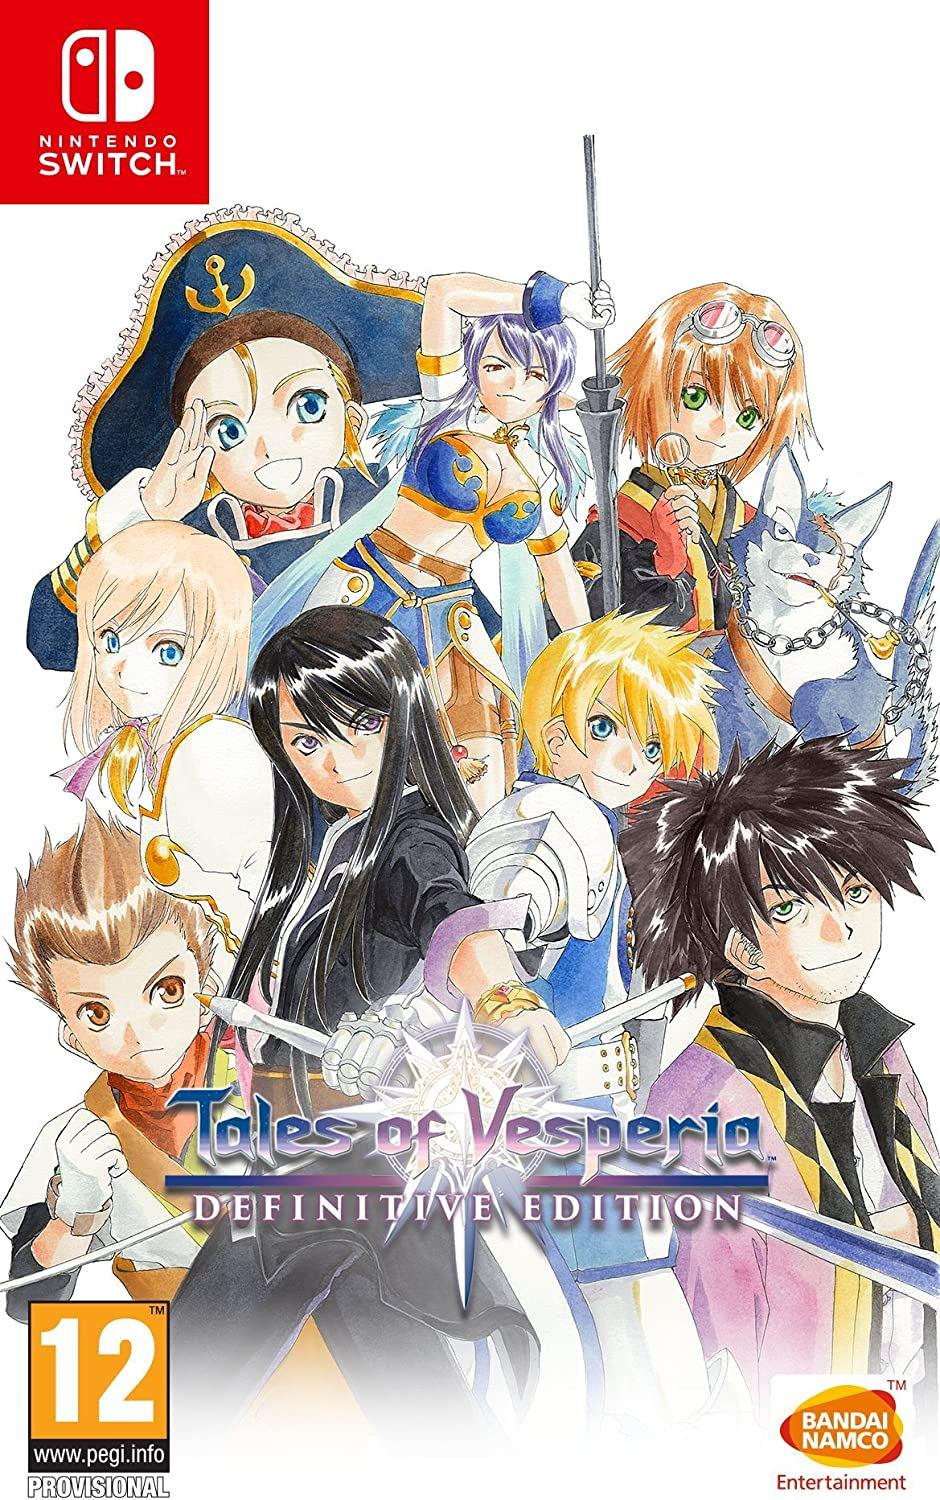 Tales of Vesperia: Definitive Edition [SWITCH] | Bandai Namco Entertainment